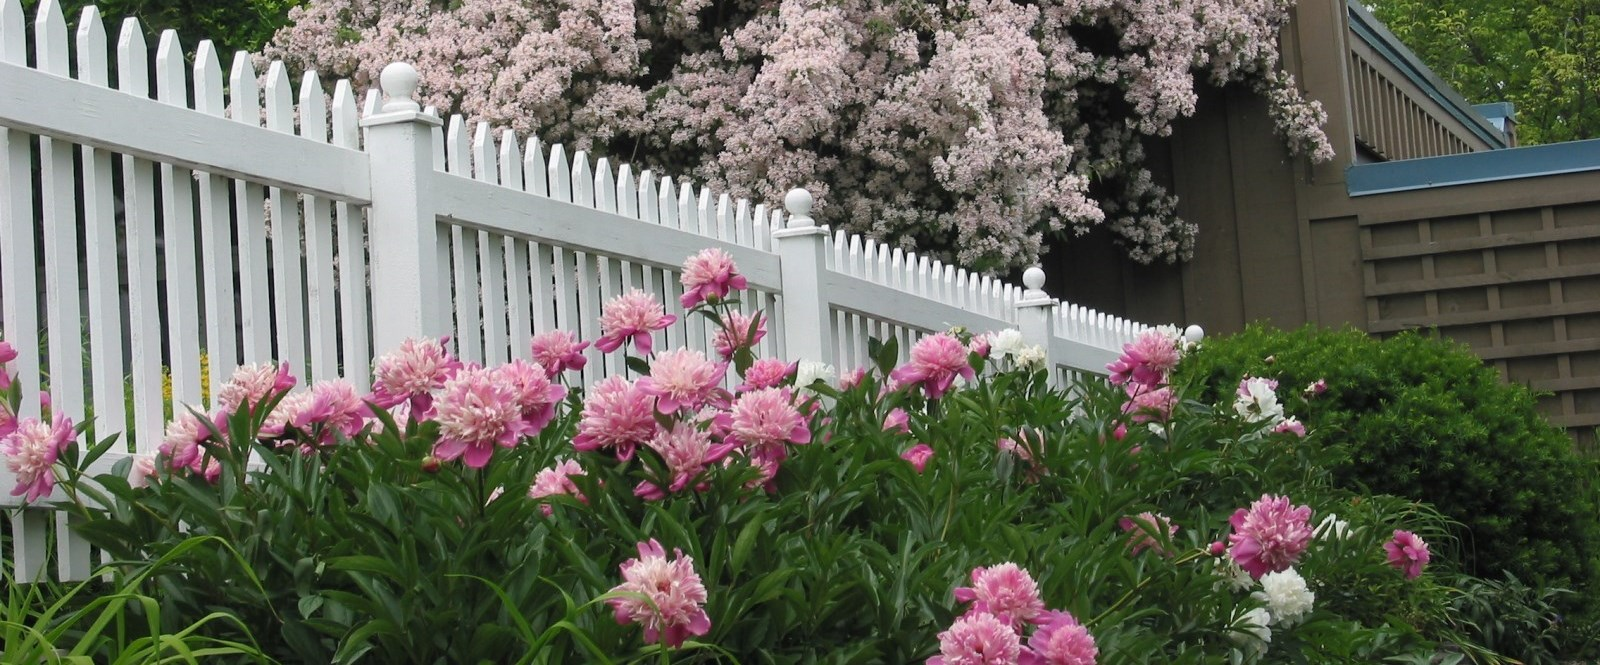 Pink and white peonies in full bloom with white picket fence and lilacs in background